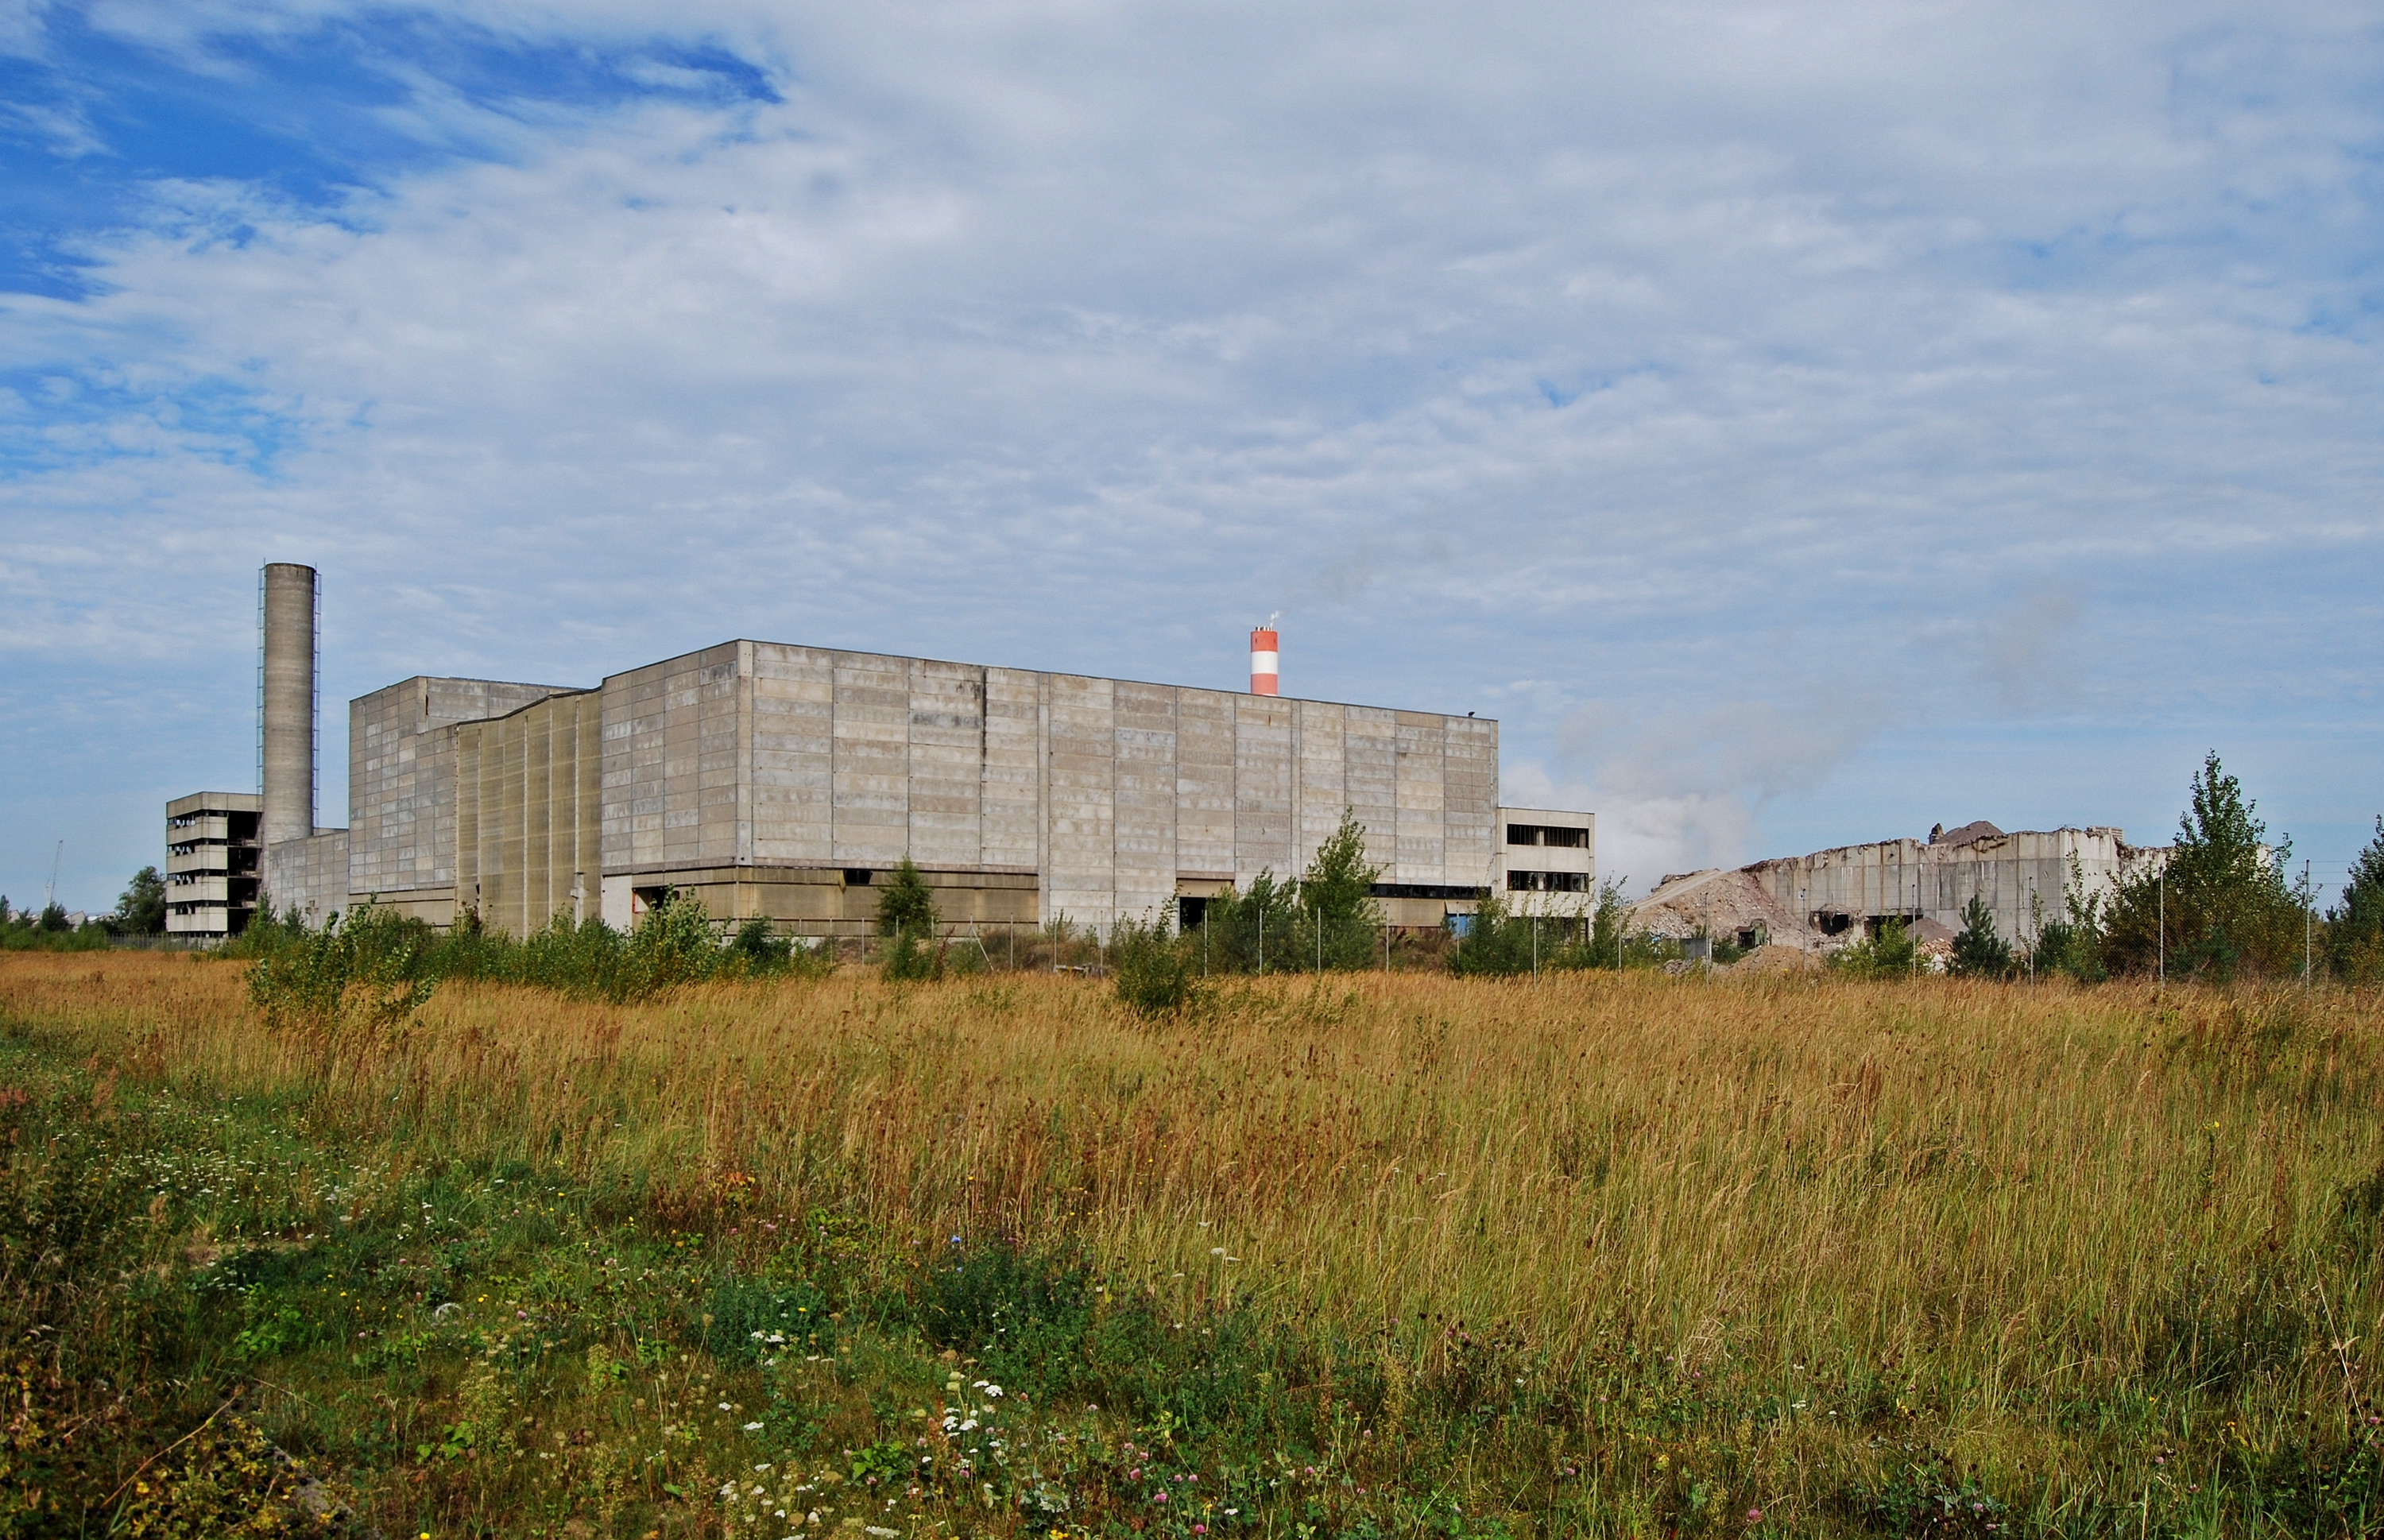 Fish aquarium tarapur - Stendal Nuclear Power Plant Planned As The Largest Nuclear Power Station In East Germany